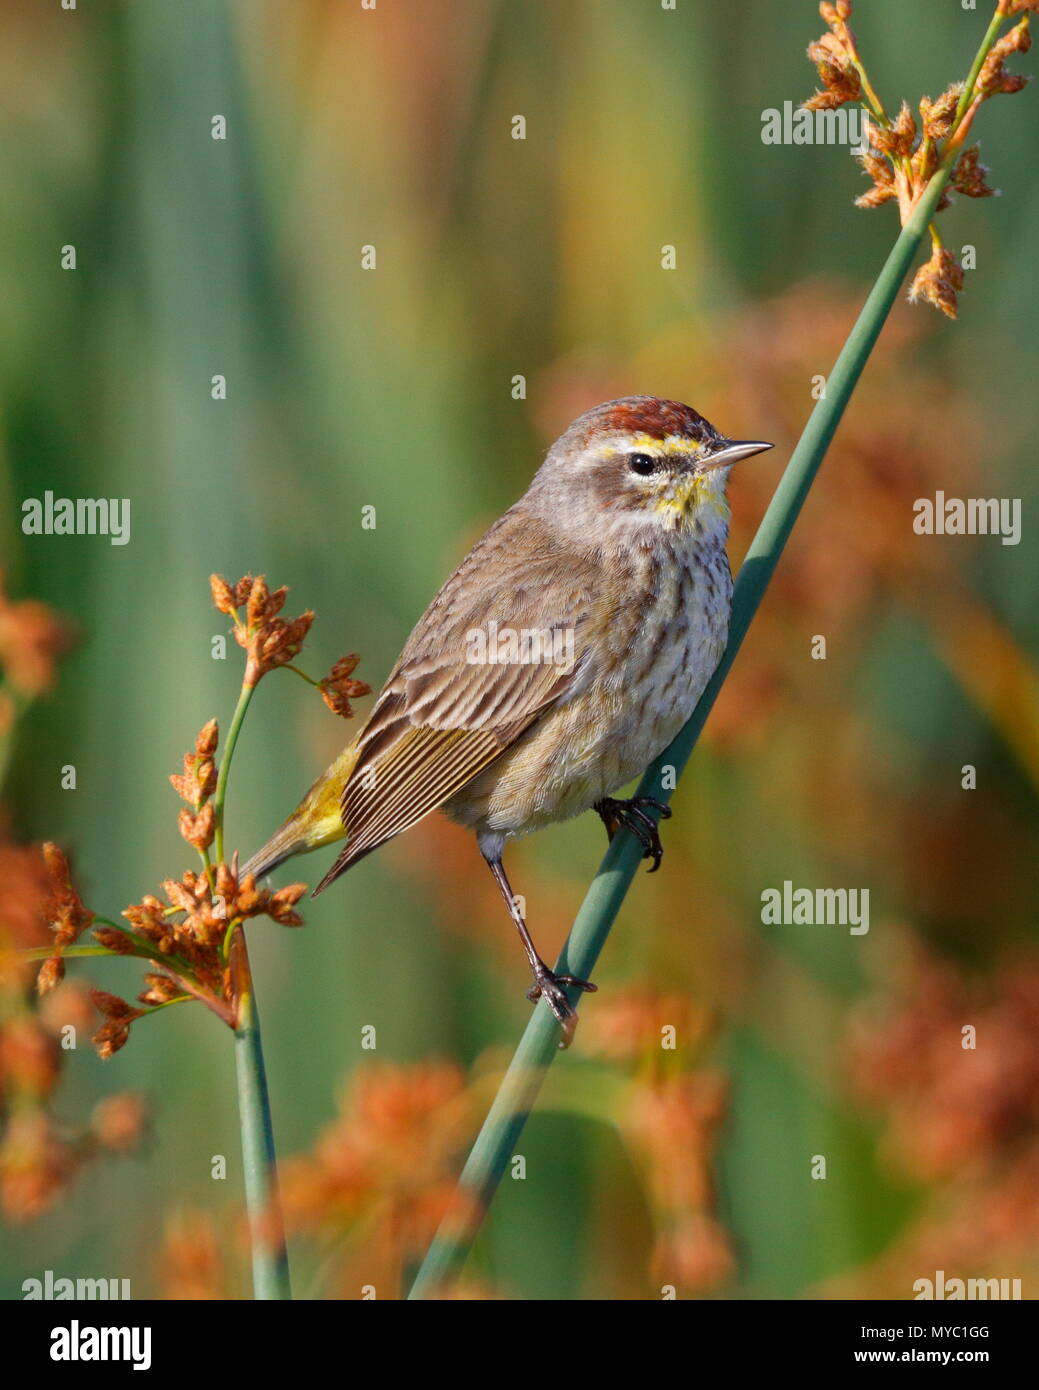 A wintering palm warbler, Setophaga palmarum, perches on grass. - Stock Image